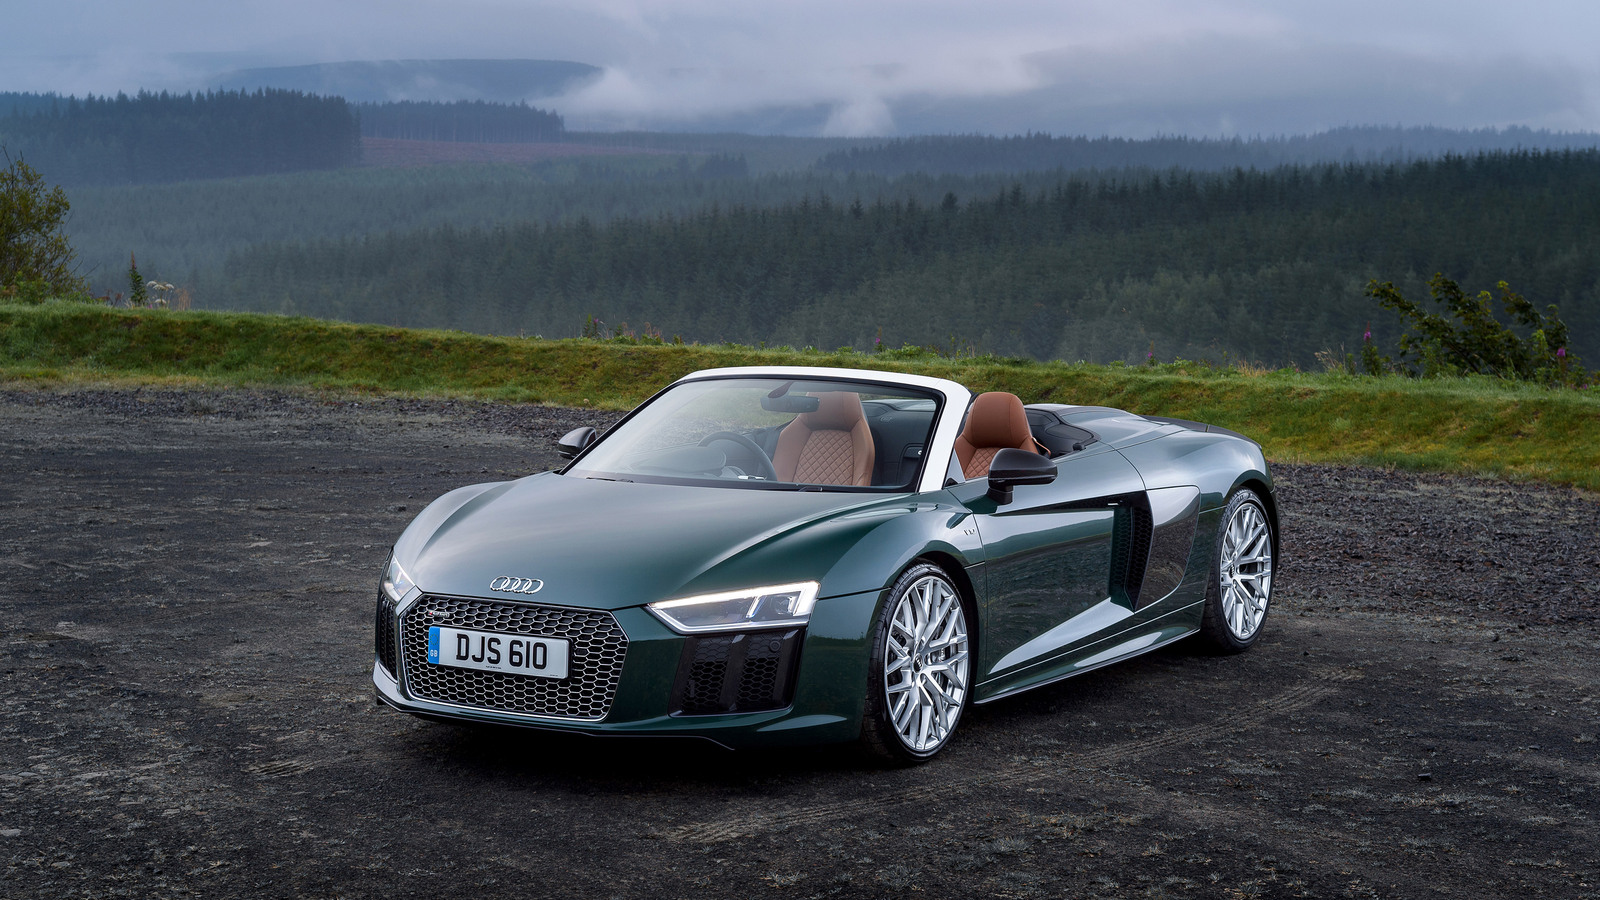 1600x900 audi r8 spyder v10 plus 2017 1600x900 resolution hd 4k